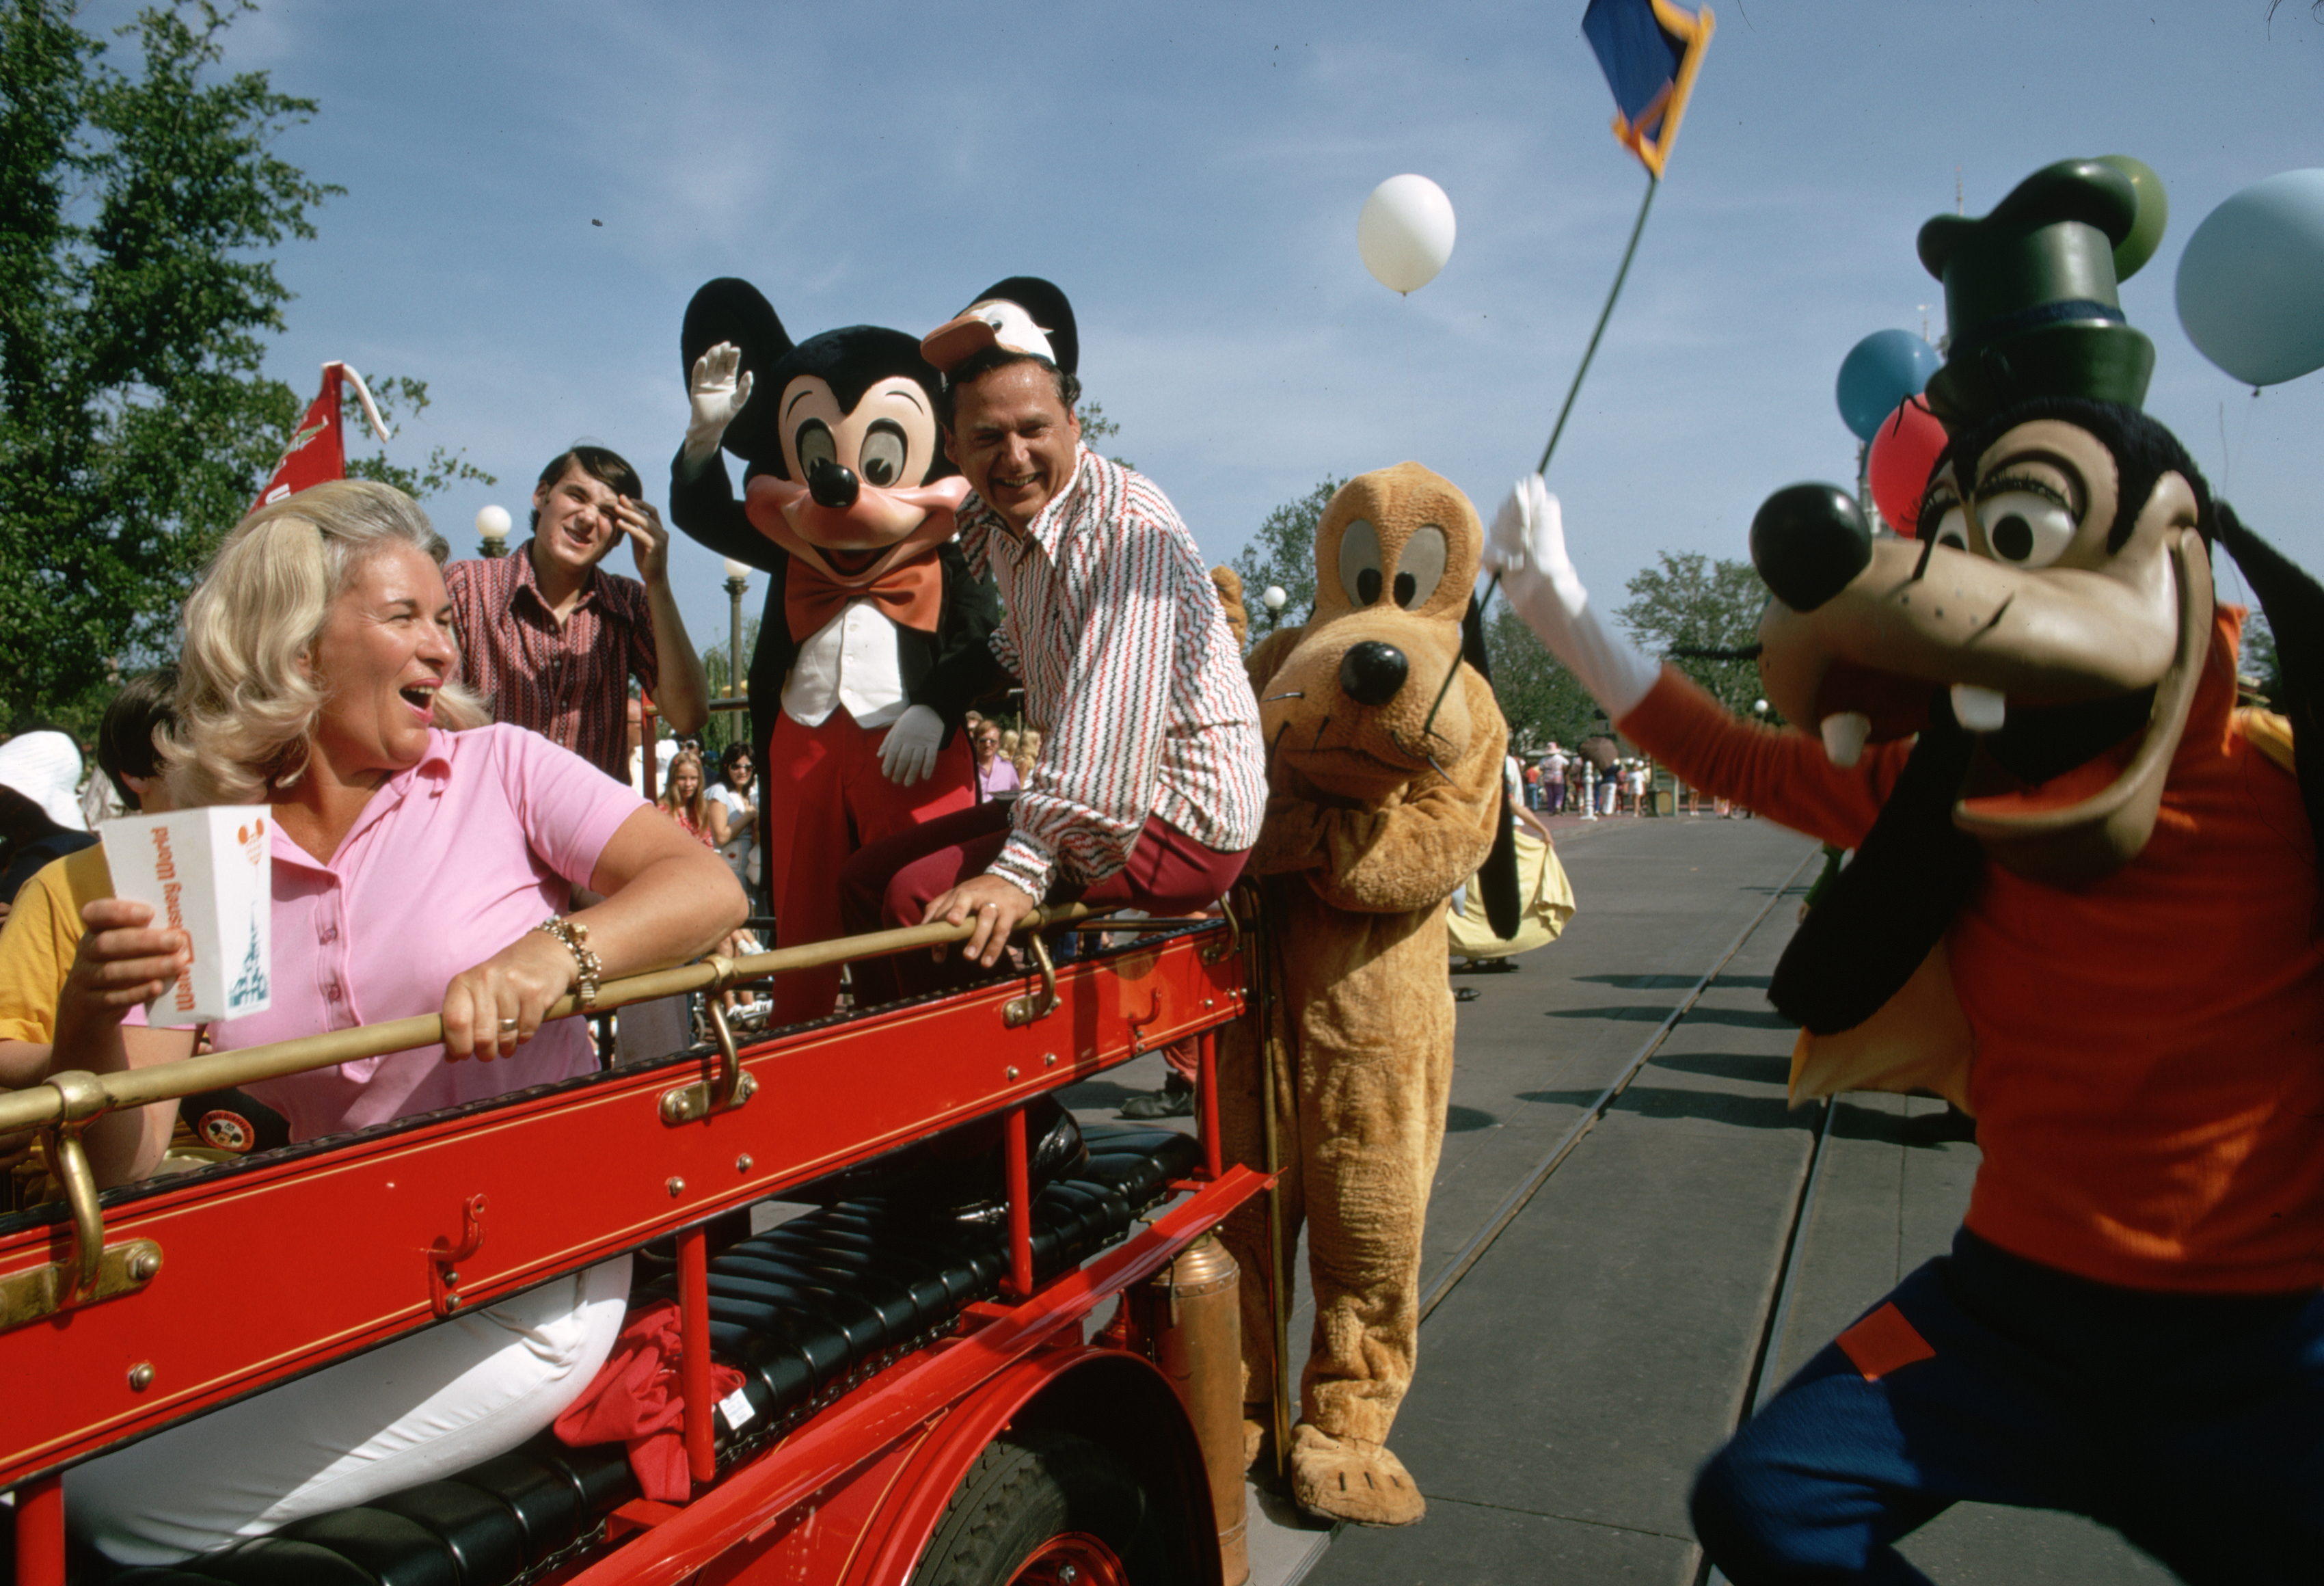 Slide 28 of 33: Tourists and Disney Characters in Parade (Photo by Jonathan Blair/Corbis via Getty Images)